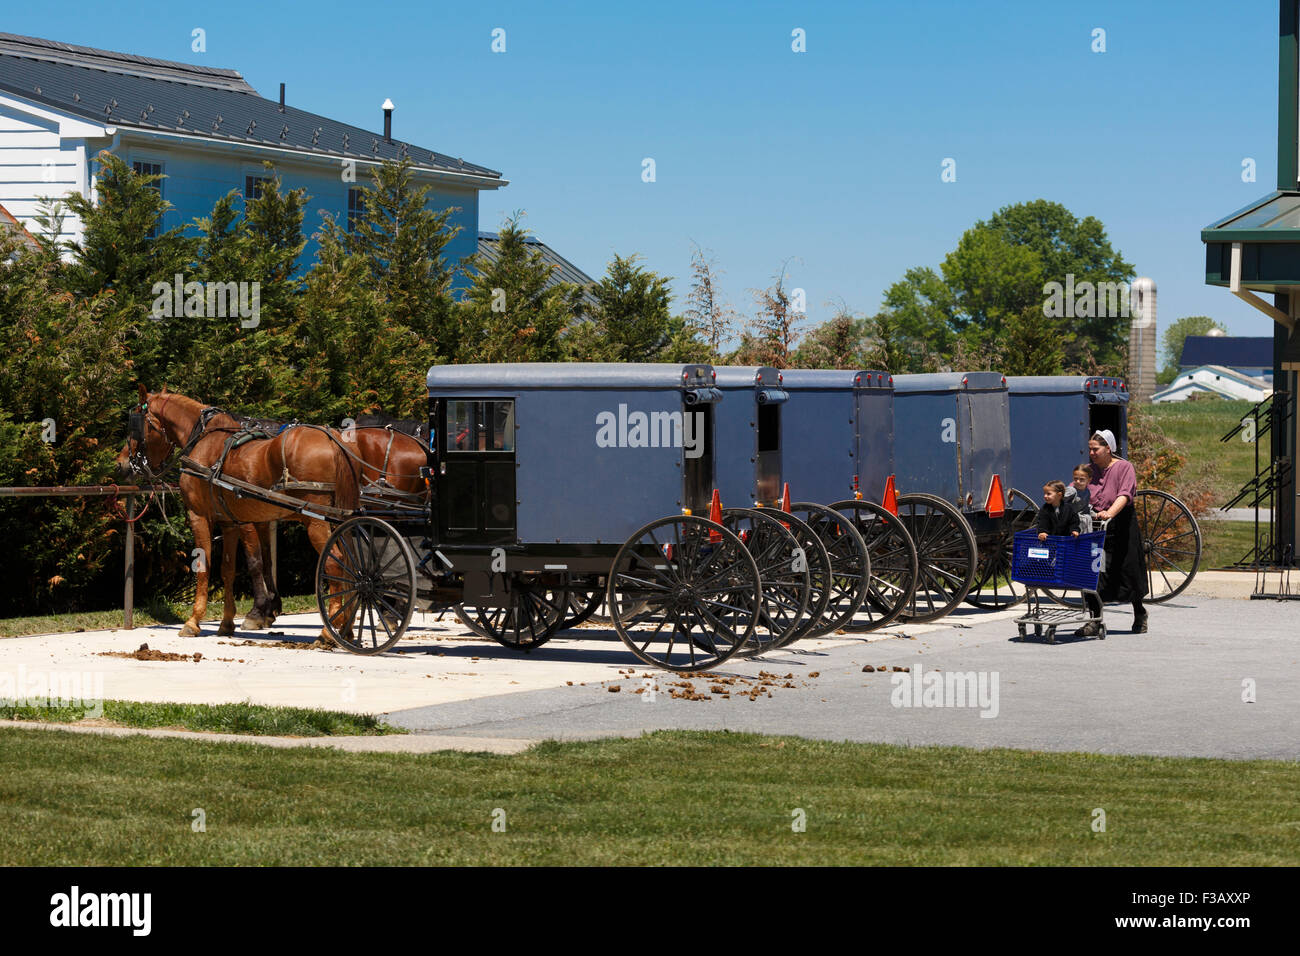 Amish woman pushing shopping cart with two children in it with a row of Amish horse and square carriages hitched - Stock Image